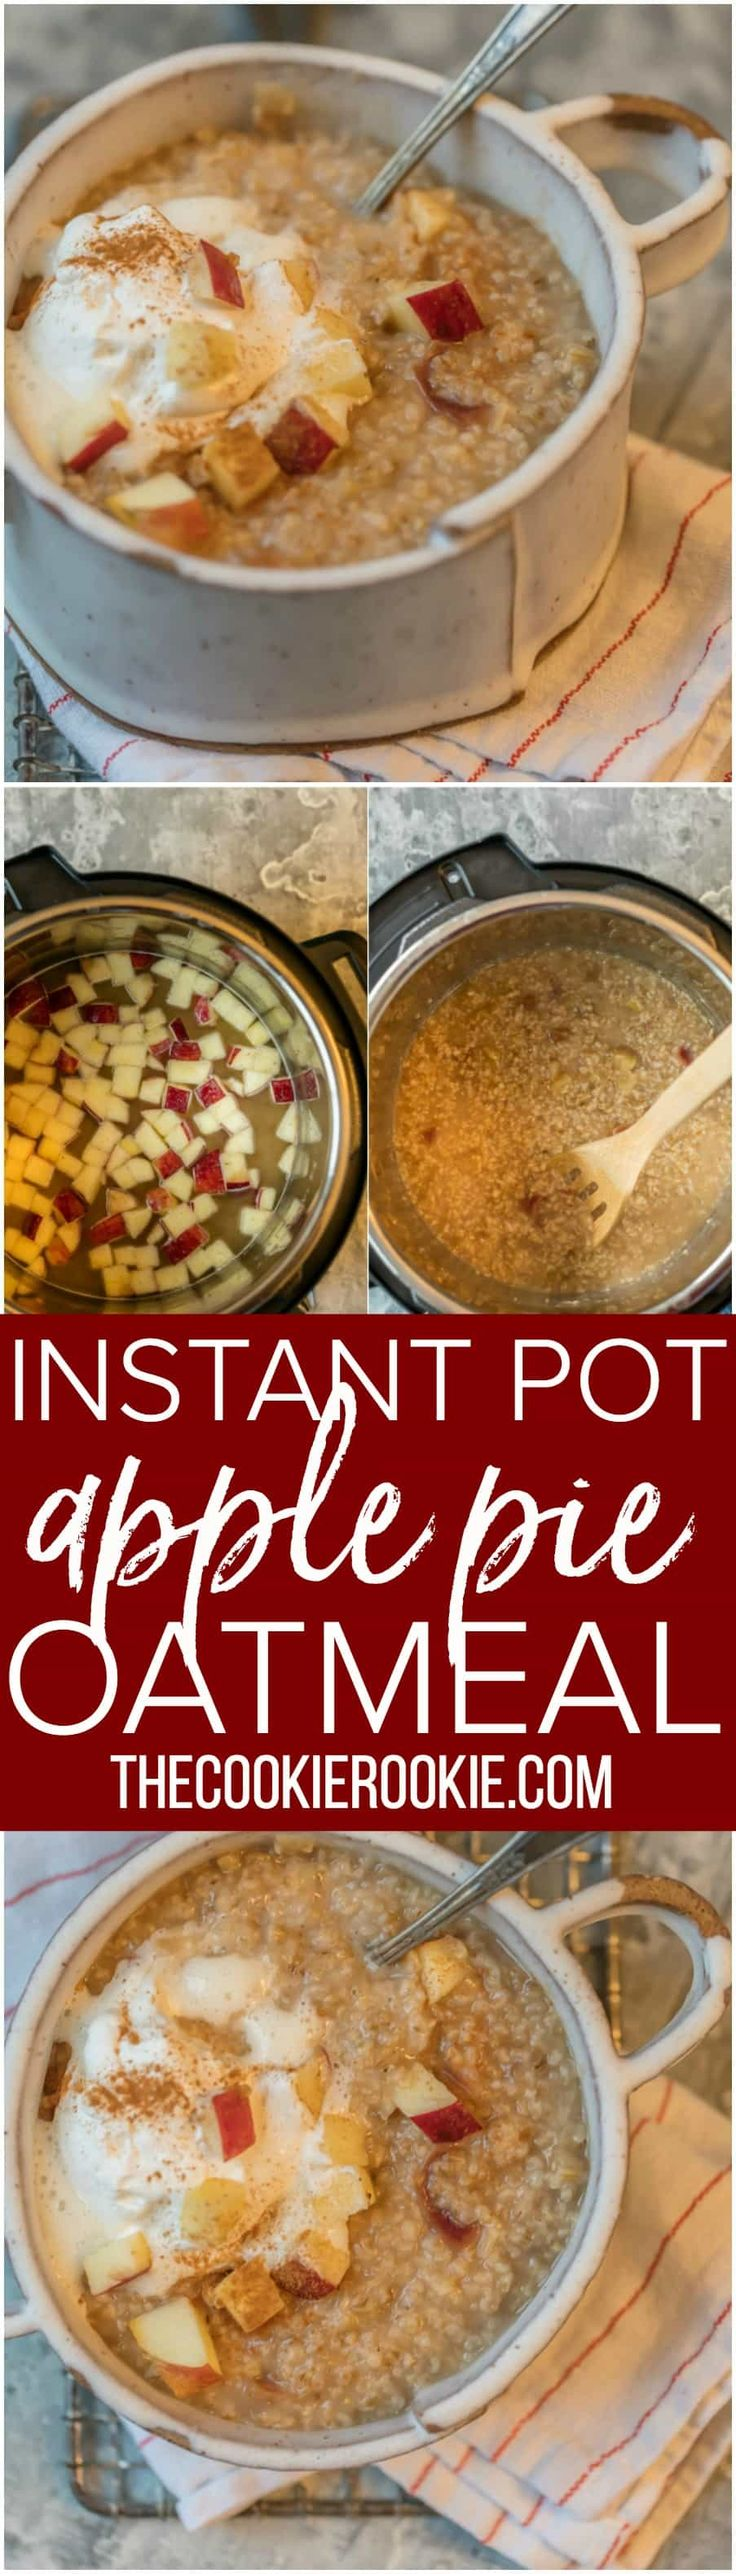 This INSTANT POT APPLE PIE OATMEAL is made in under 10 minutes and is making mornings easy and delicious! Top with some fresh whipped cream for an extra special treat. via @beckygallhardin